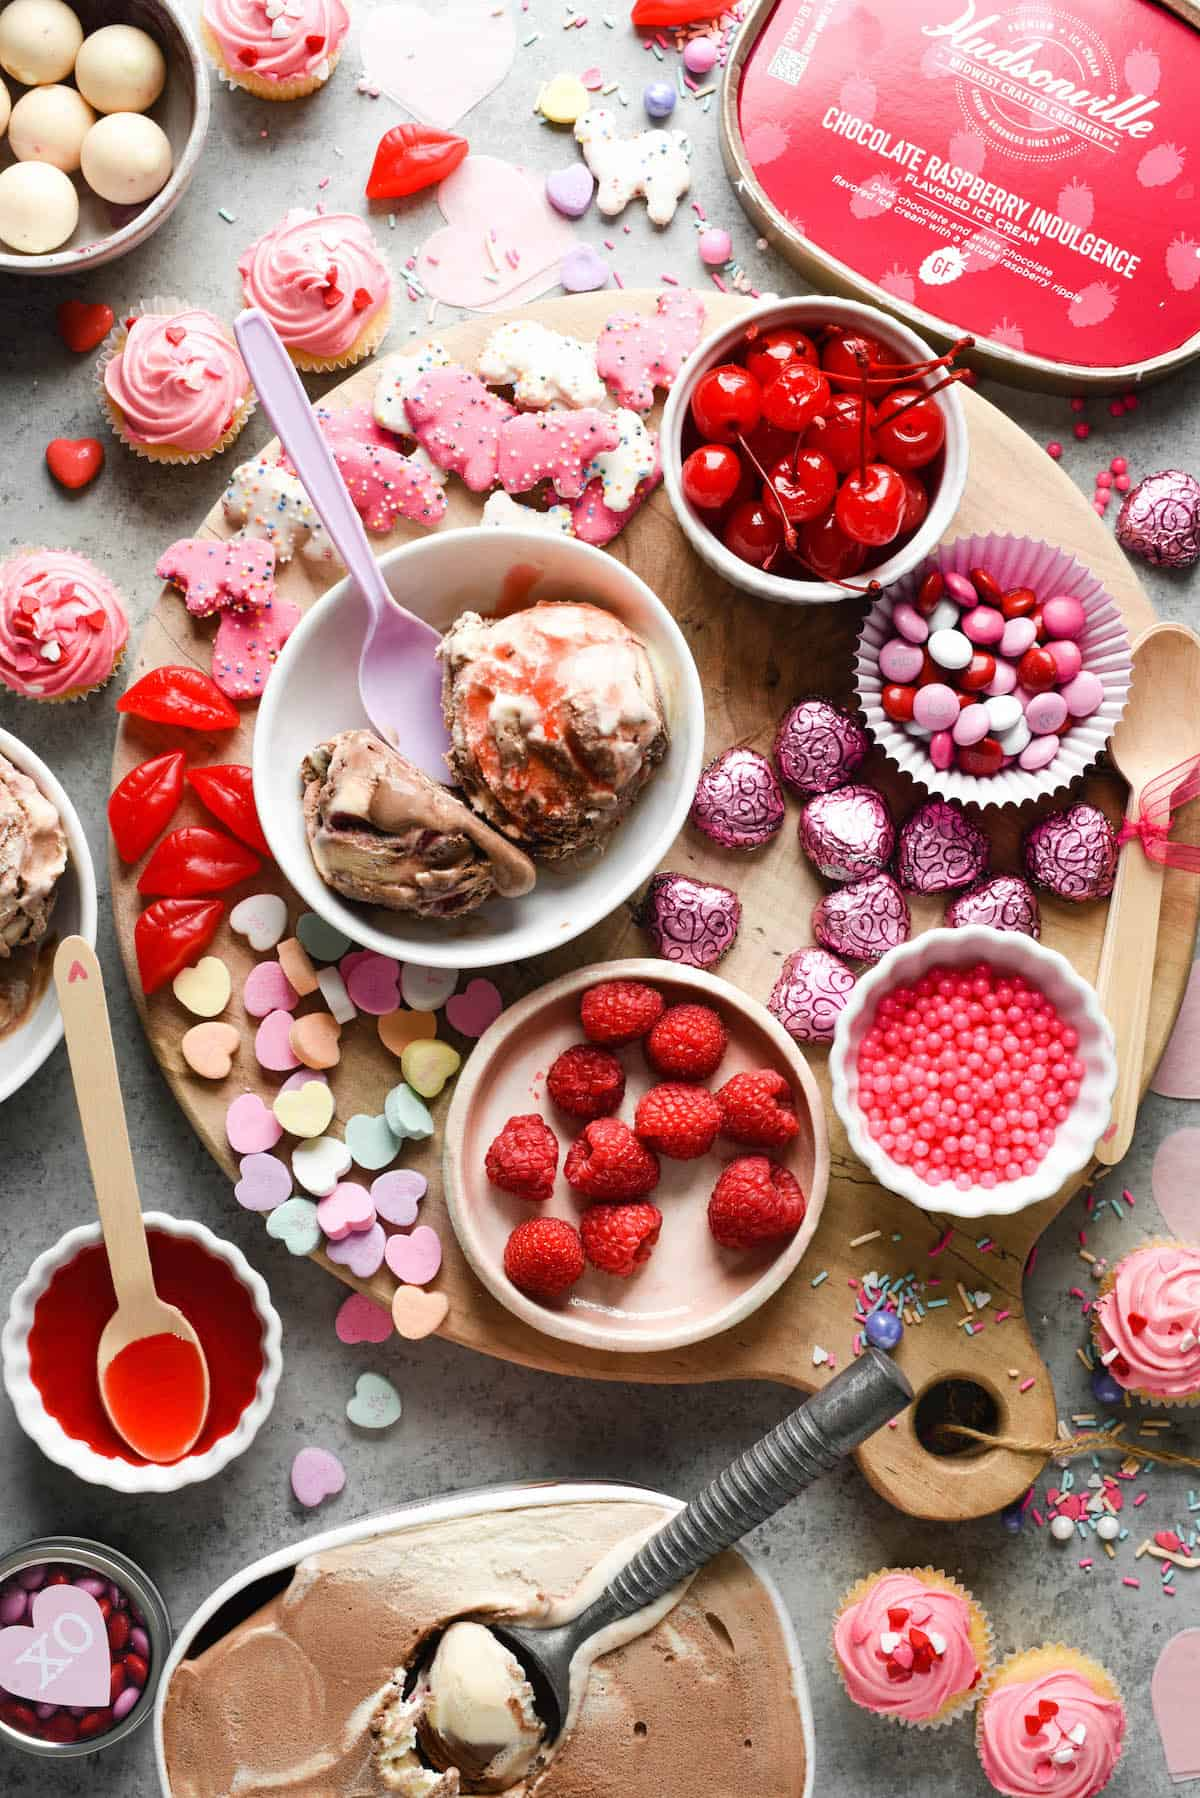 Make the holiday extra sweet with this dreamy Valentine's Day Dessert Board featuring ice cream, fruit, candies, chocolate and sprinkles! | foxeslovelemons.com